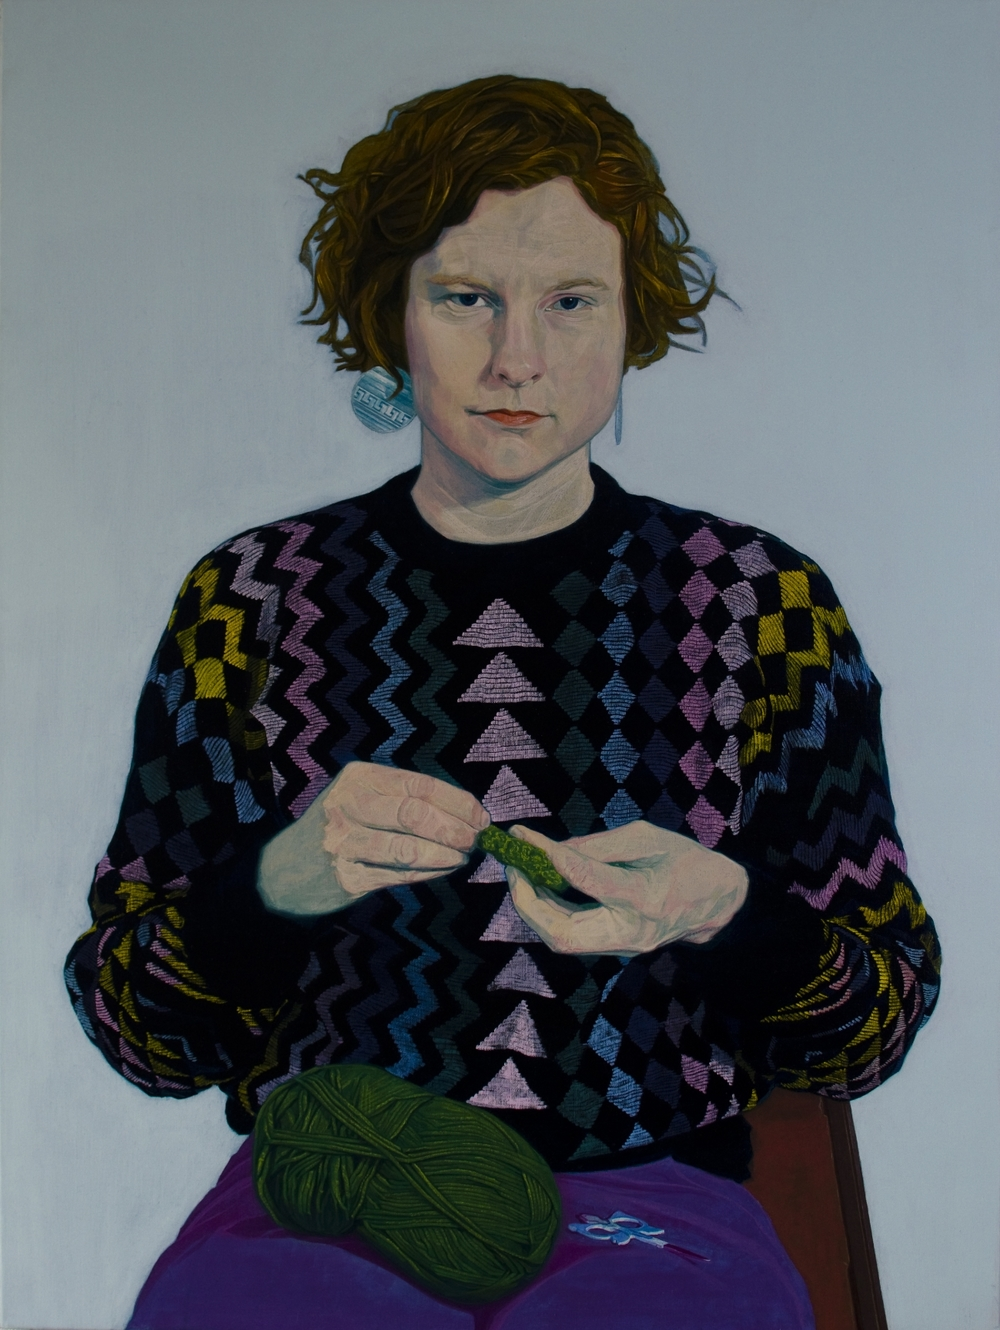 1 98 h Jesse Dayan, Mija, Oil on Linen, 36x48'',2013.jpg